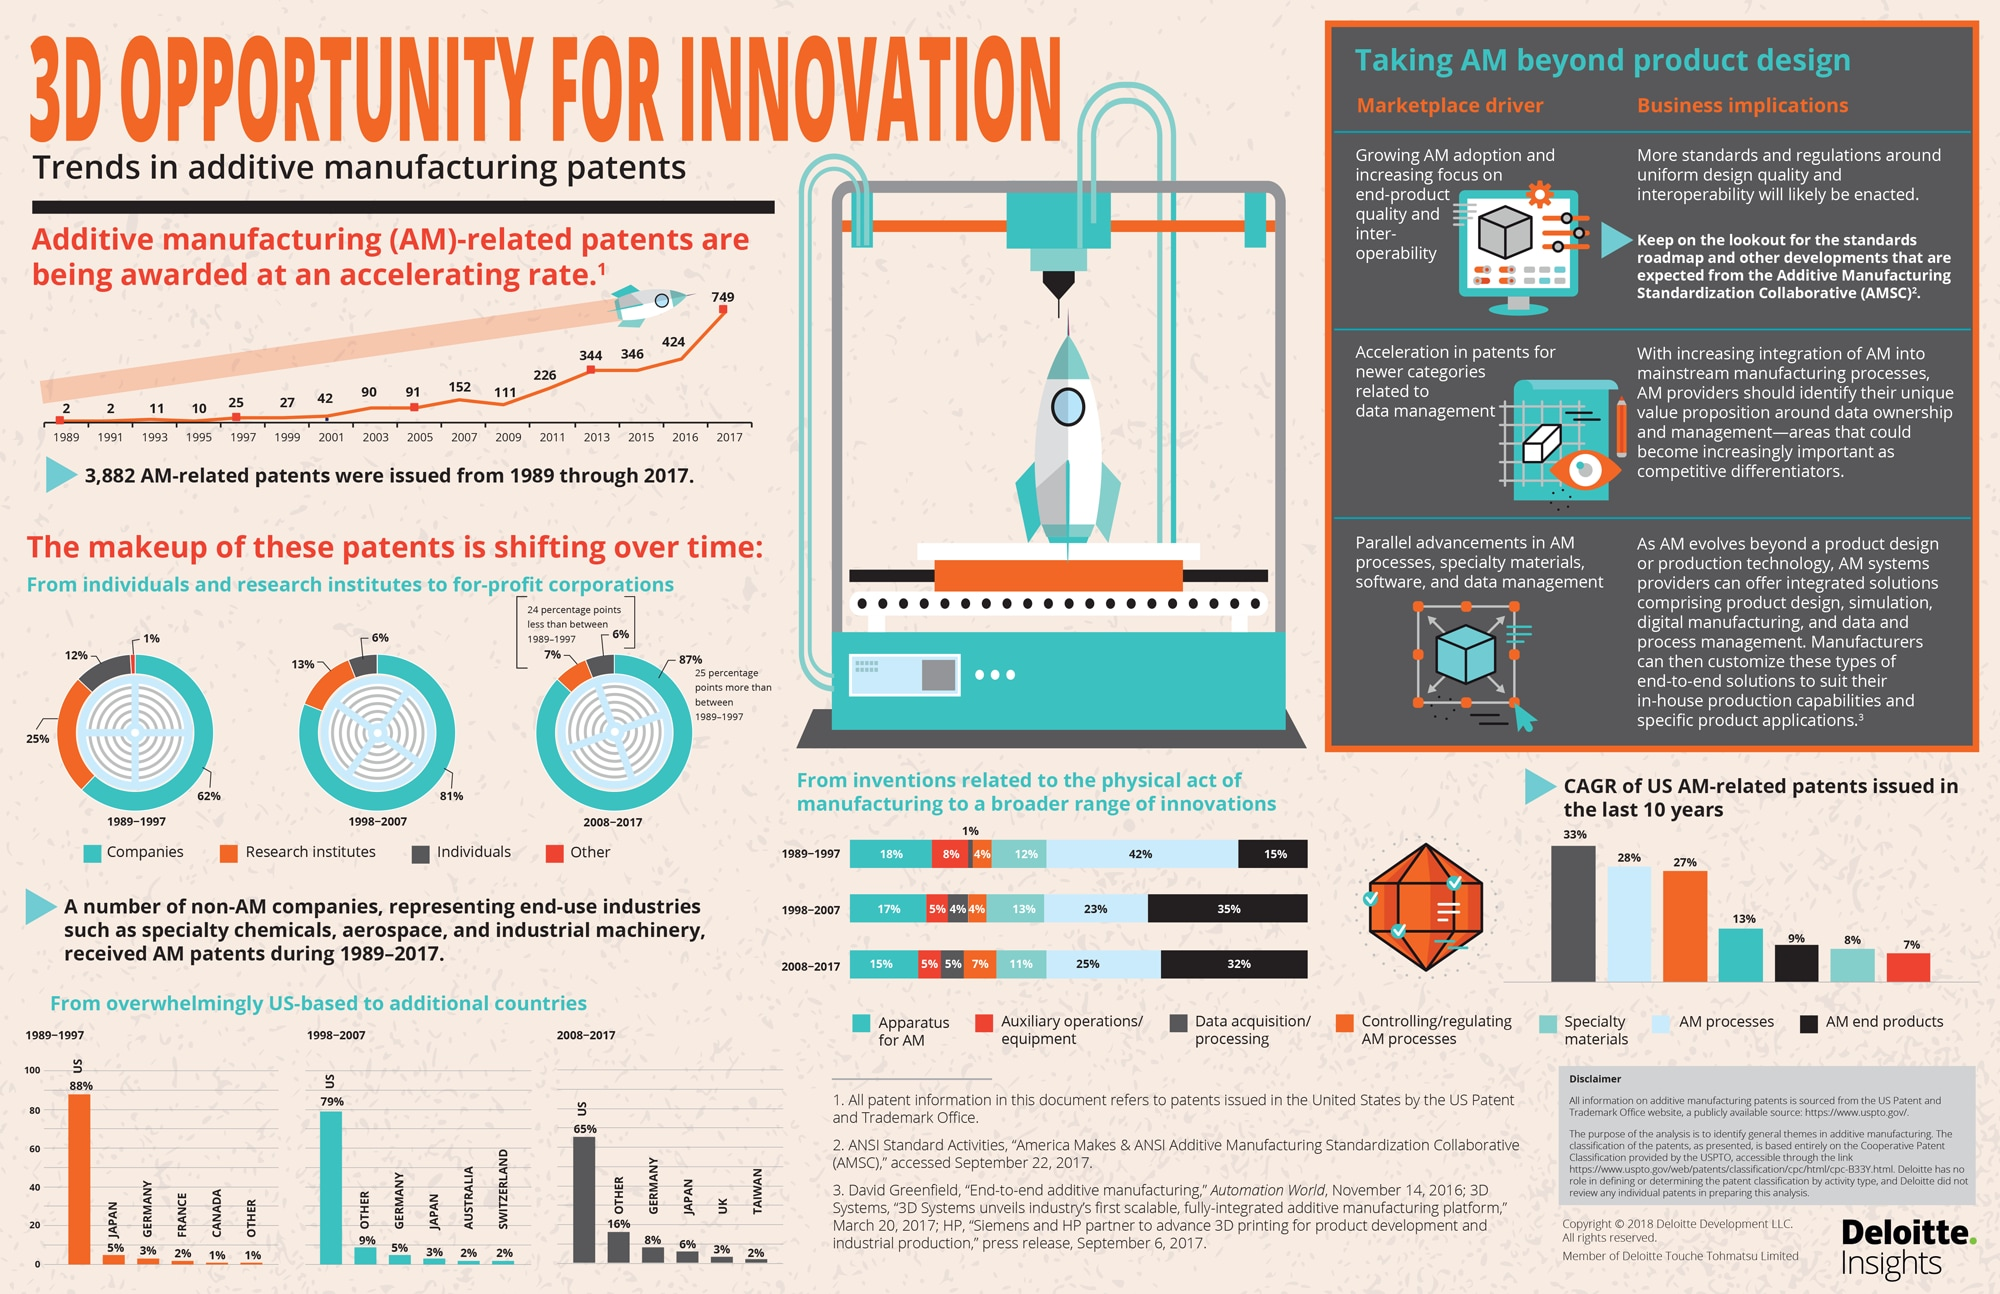 3D opportunity for innovation